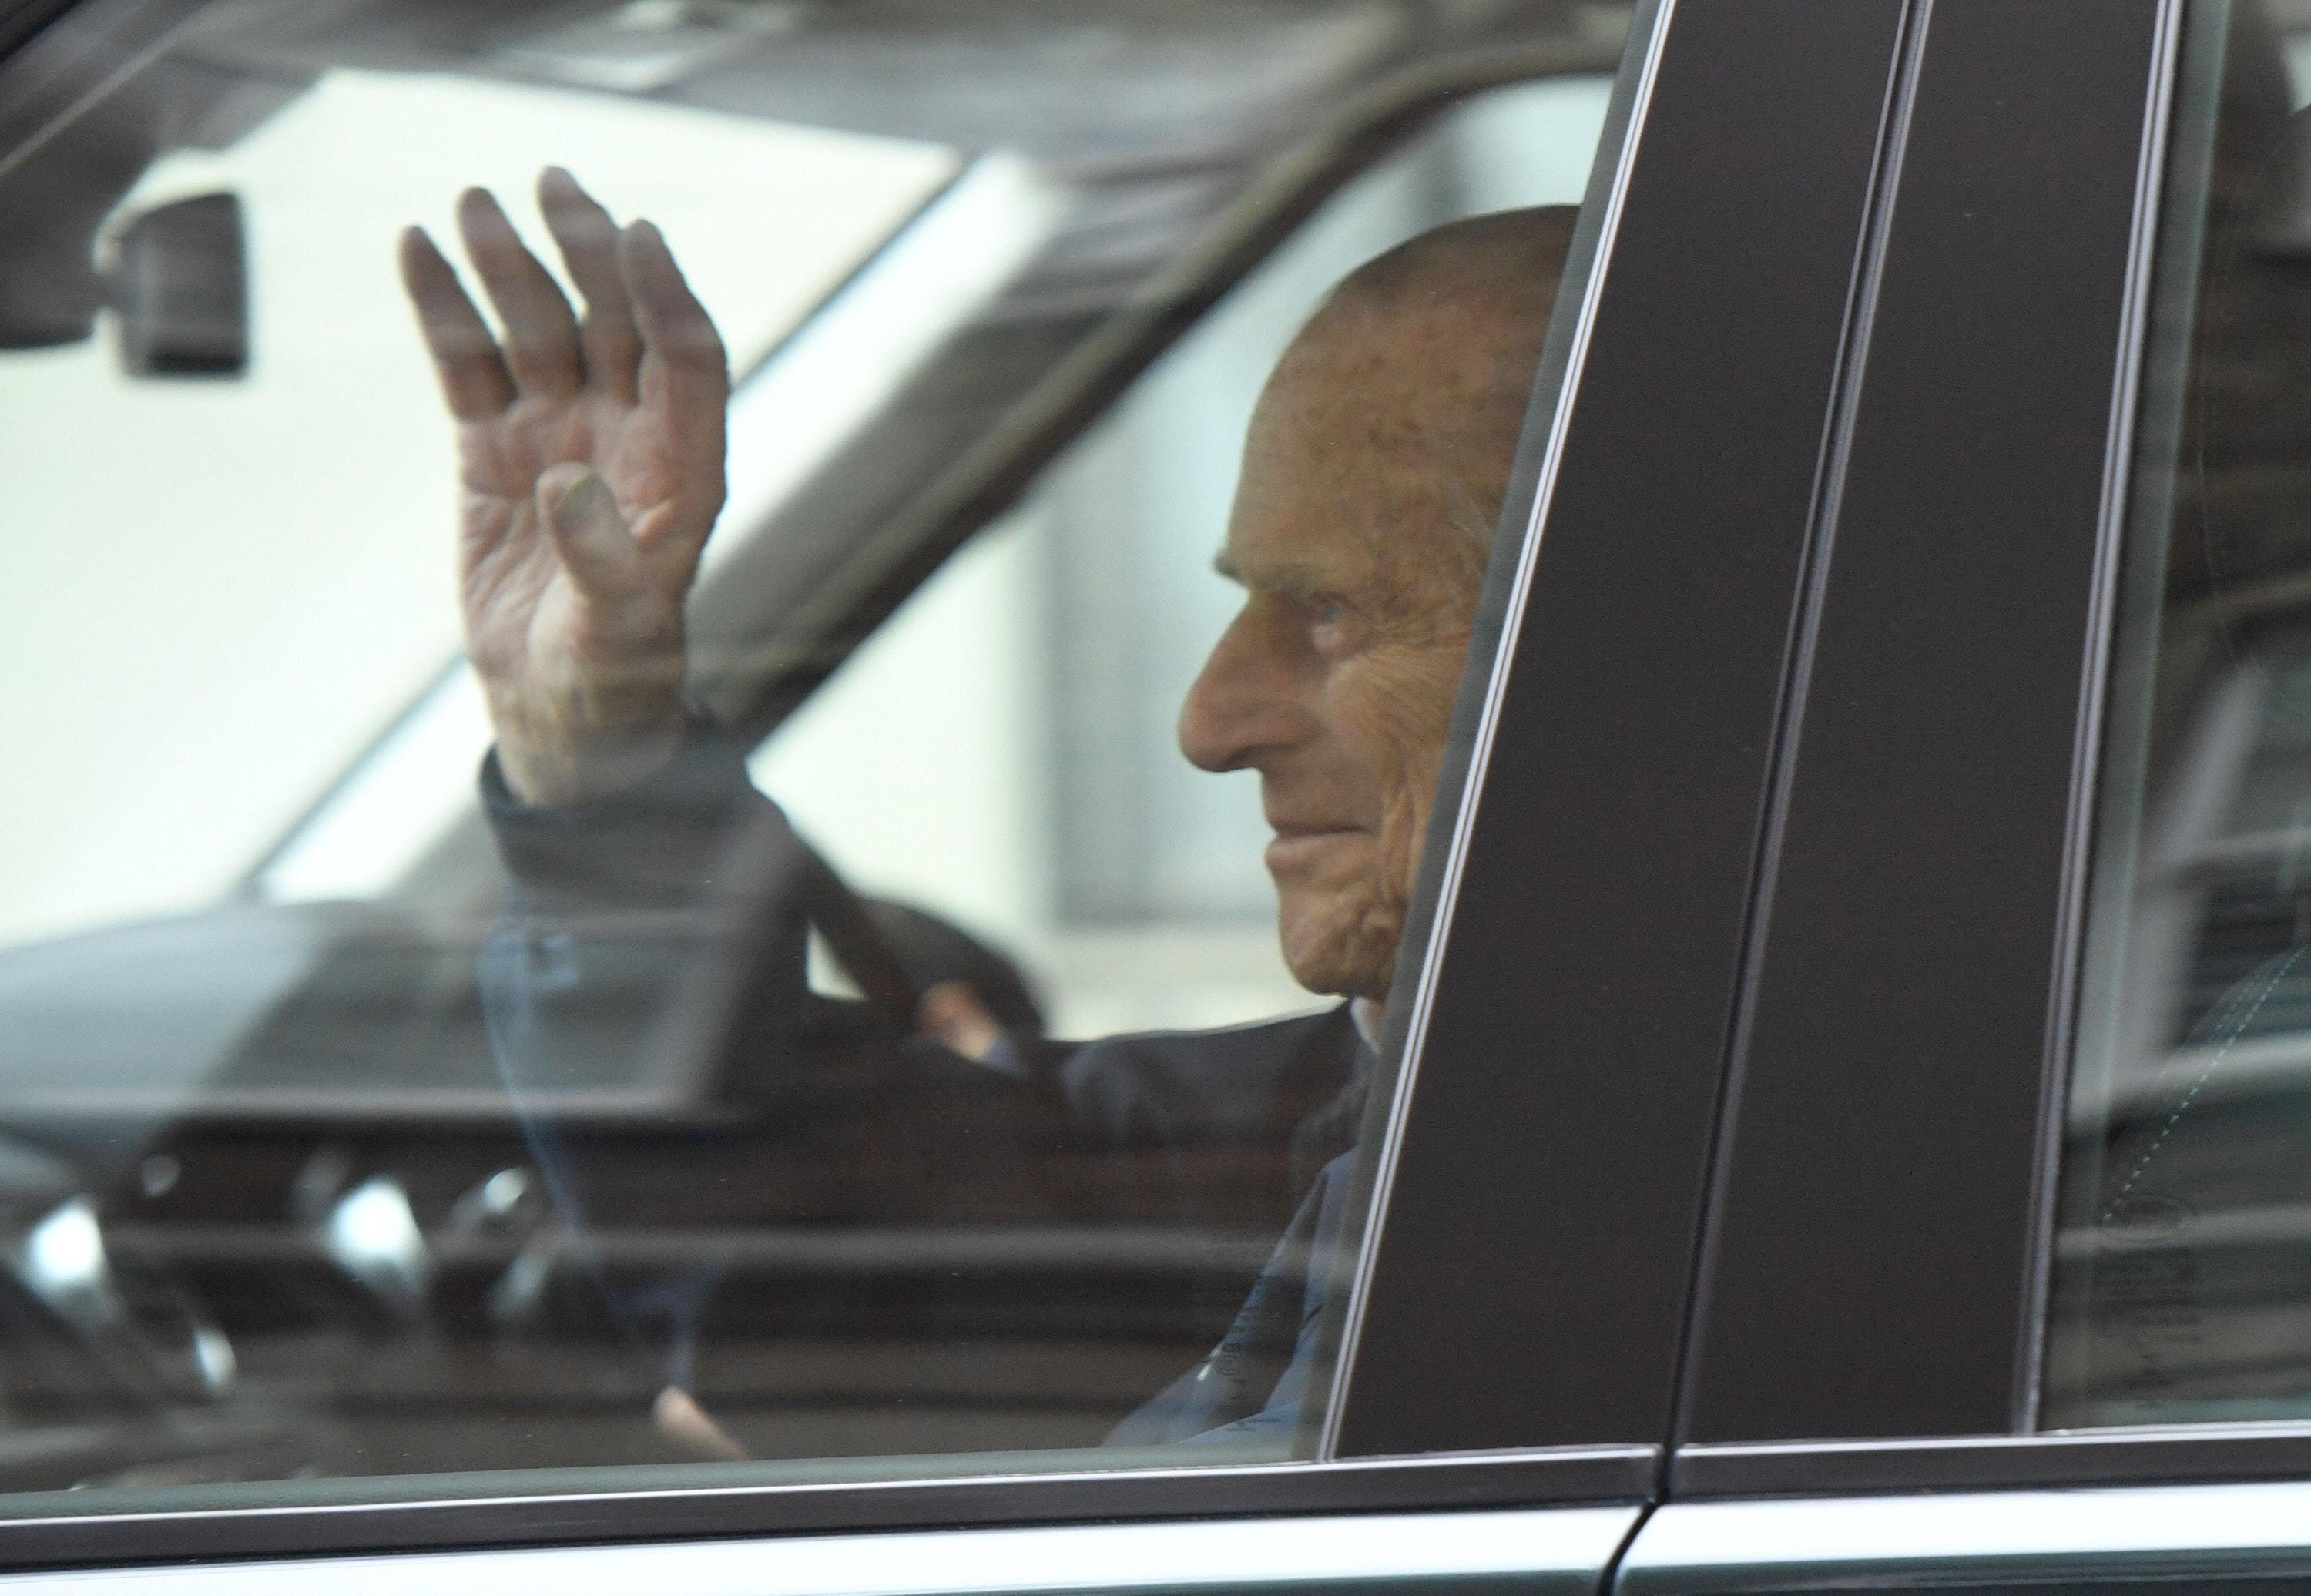 The Duke of Edinburgh leaving the King Edward VII Hospital in London after recovering from a planned surgery last Wednesday to replace his joint with a prosthetic implant (PA)